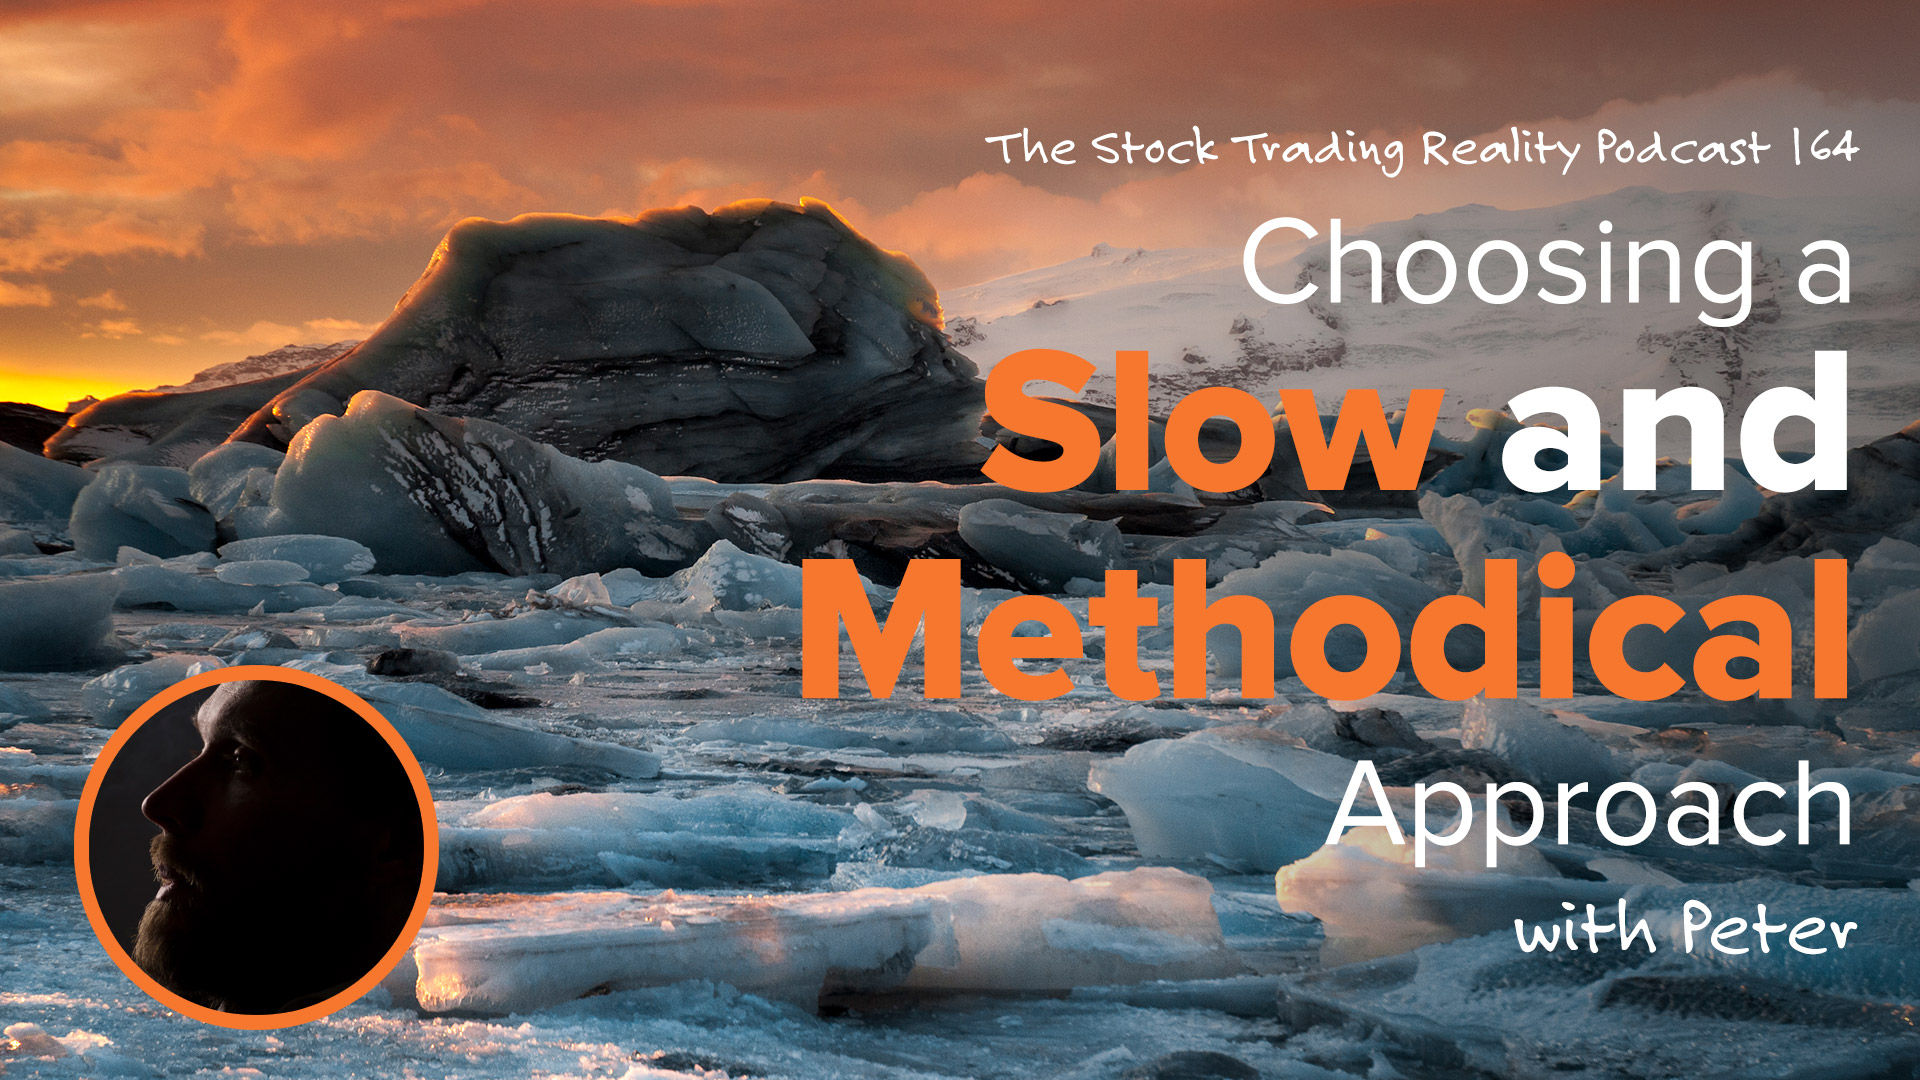 STR 164: Choosing a Slow and Methodical Approach